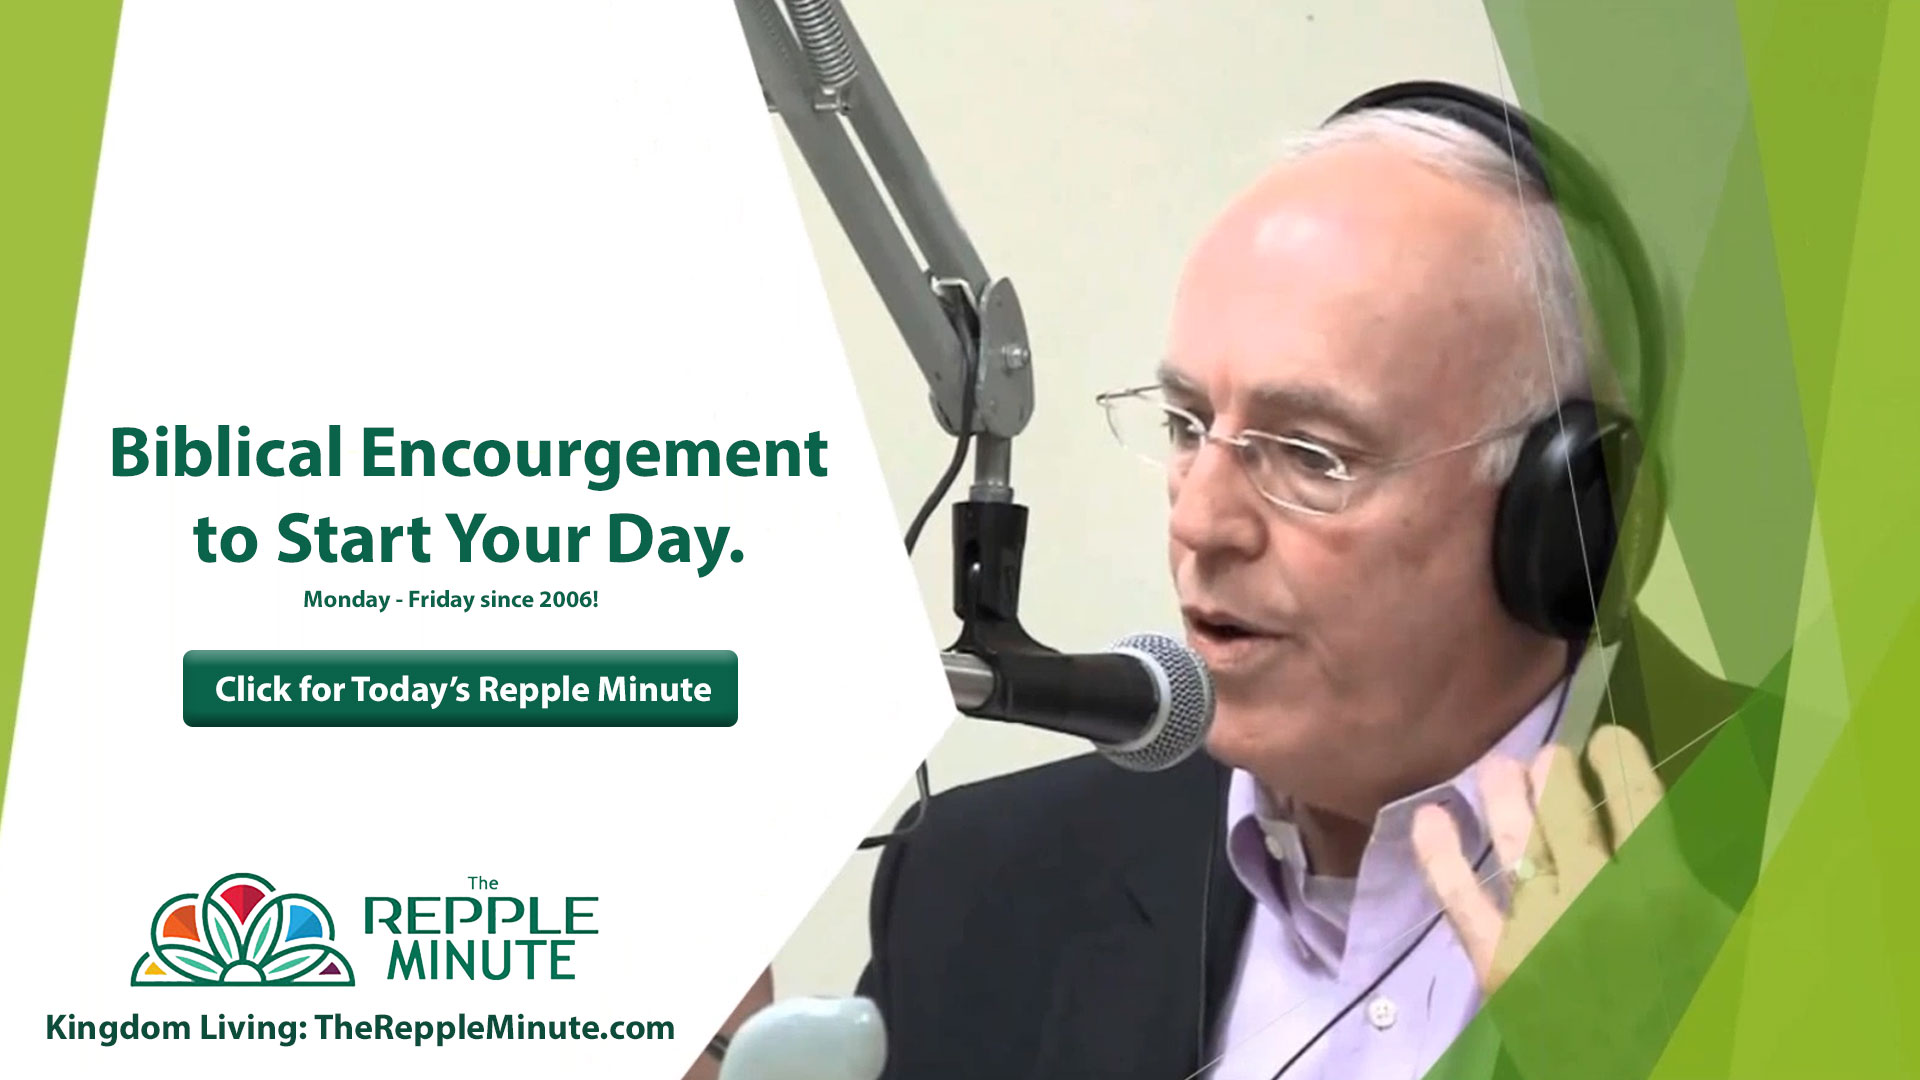 Click for Today's Repple Minute